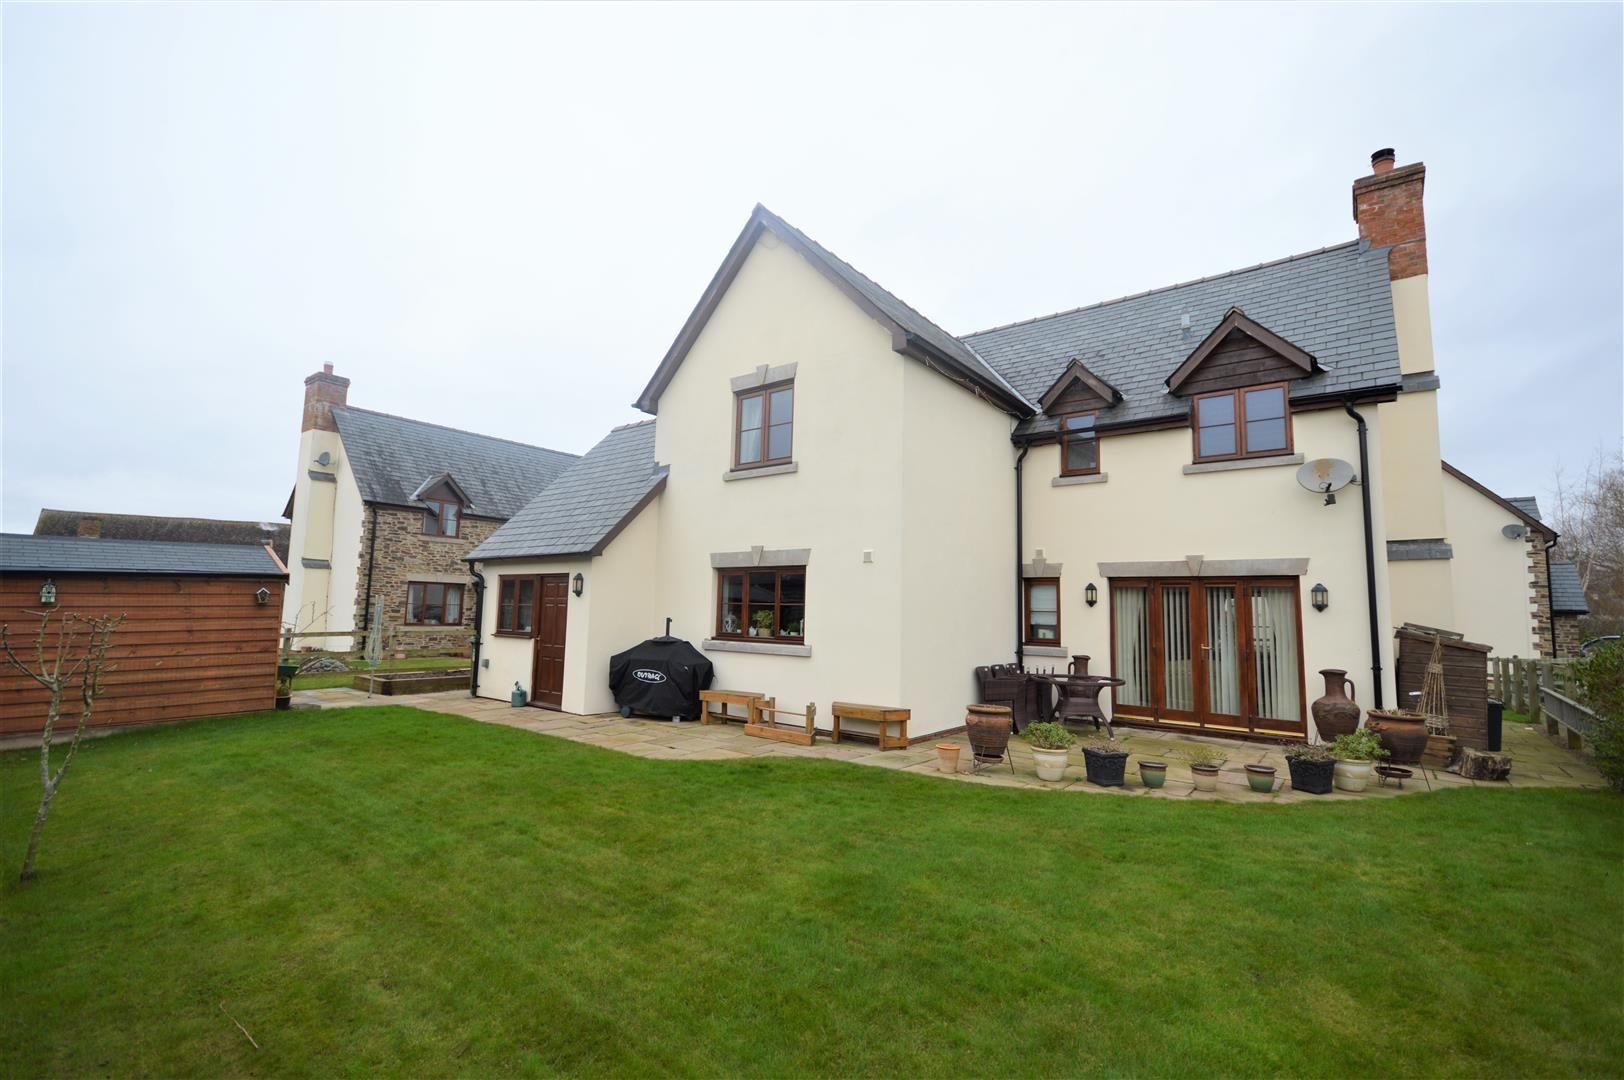 4 bed detached for sale in Eardisley 9